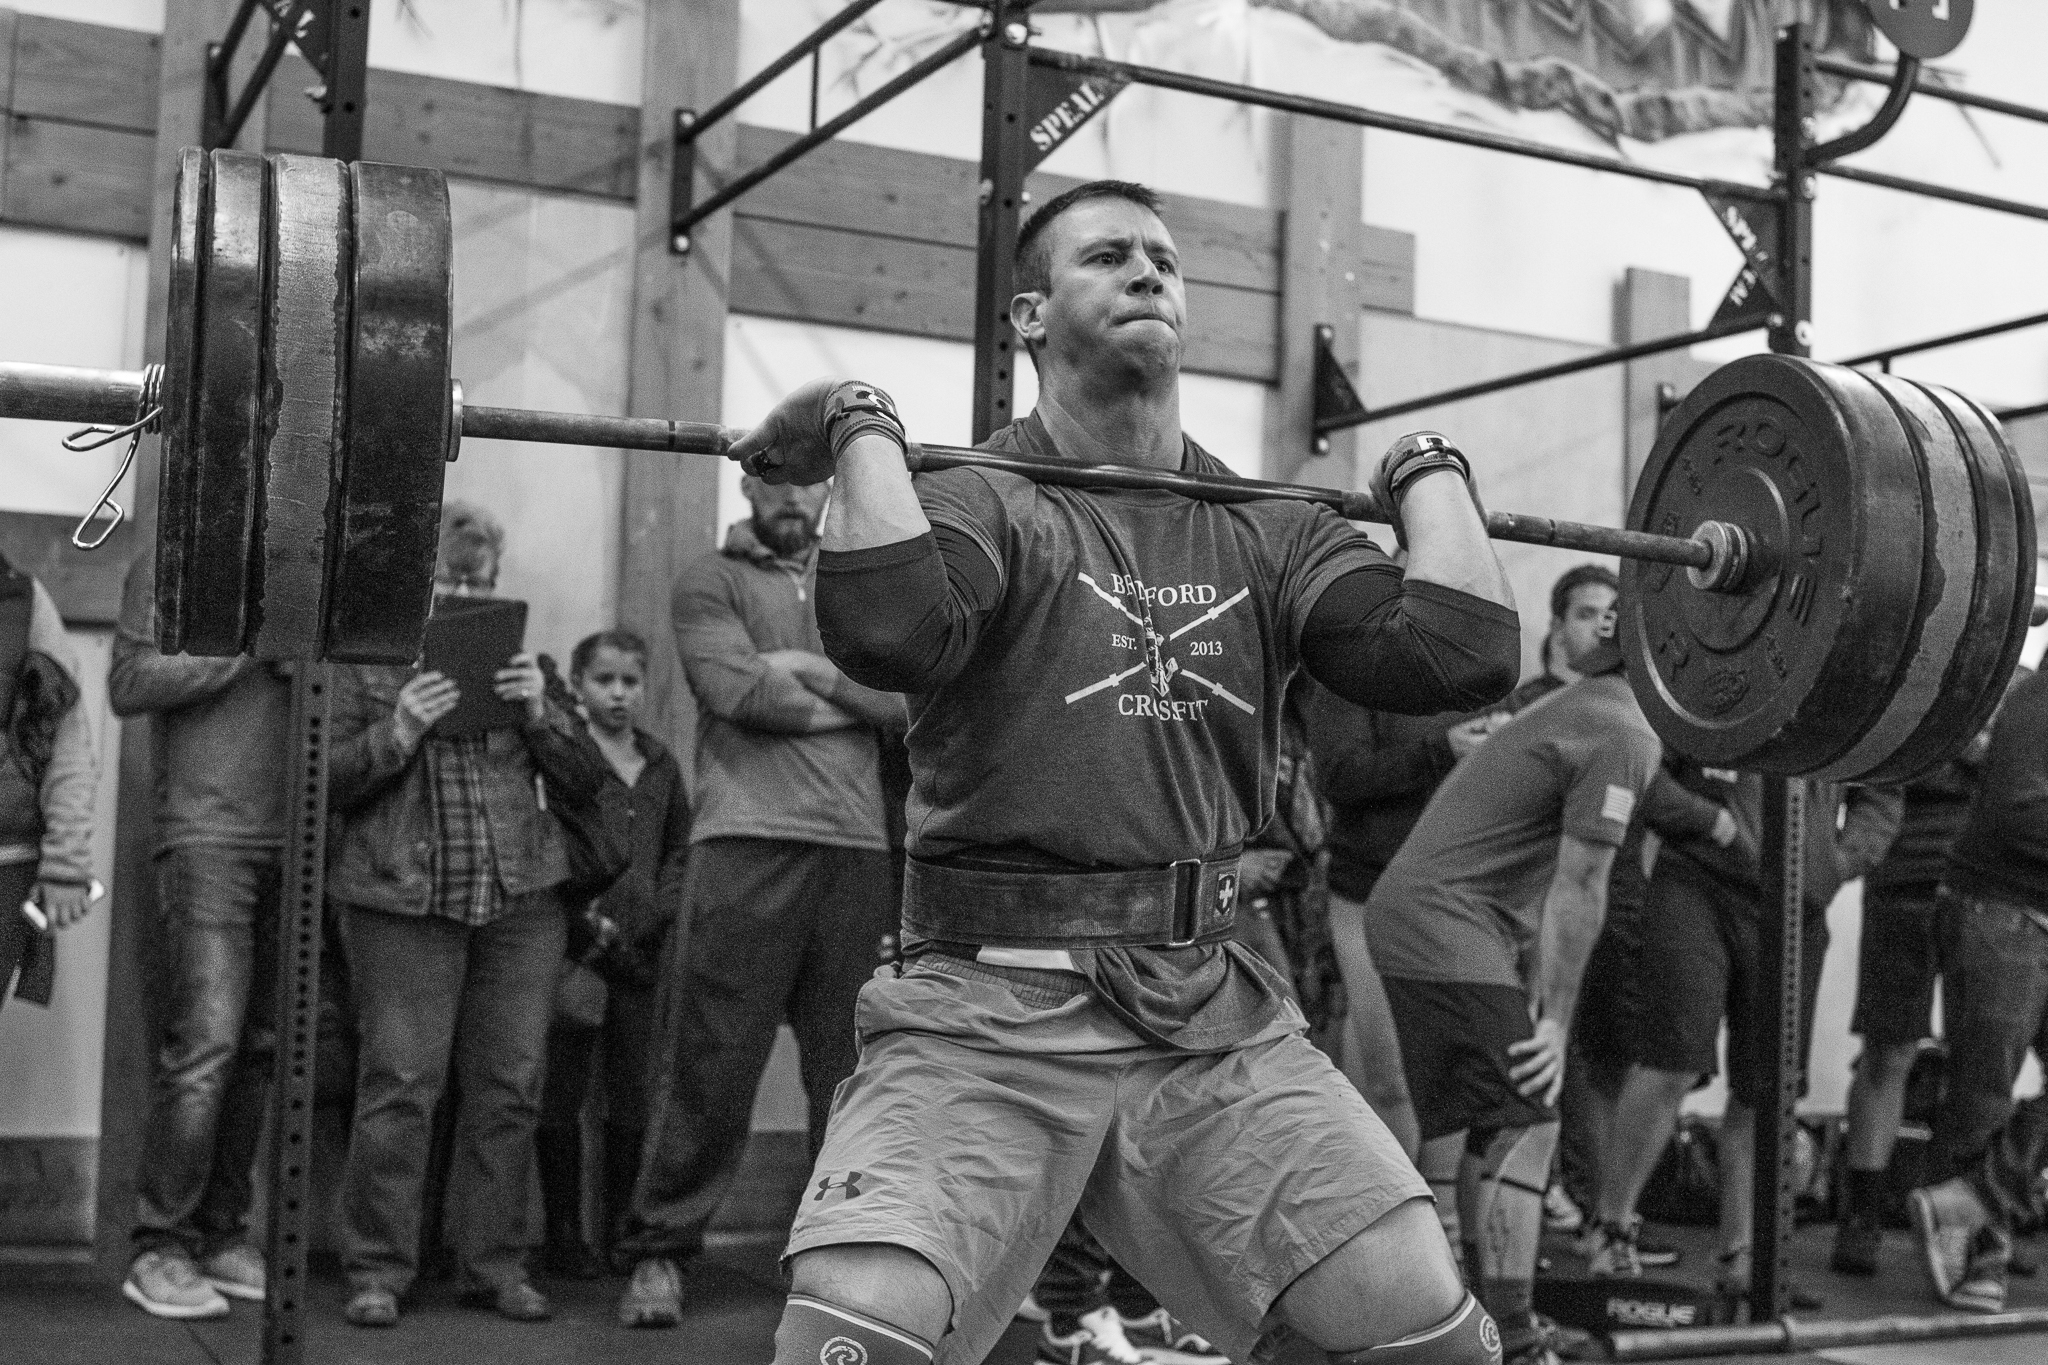 crossfit-competition-crossfit-strong-town-connecticut-power-clean-everyday-lifters